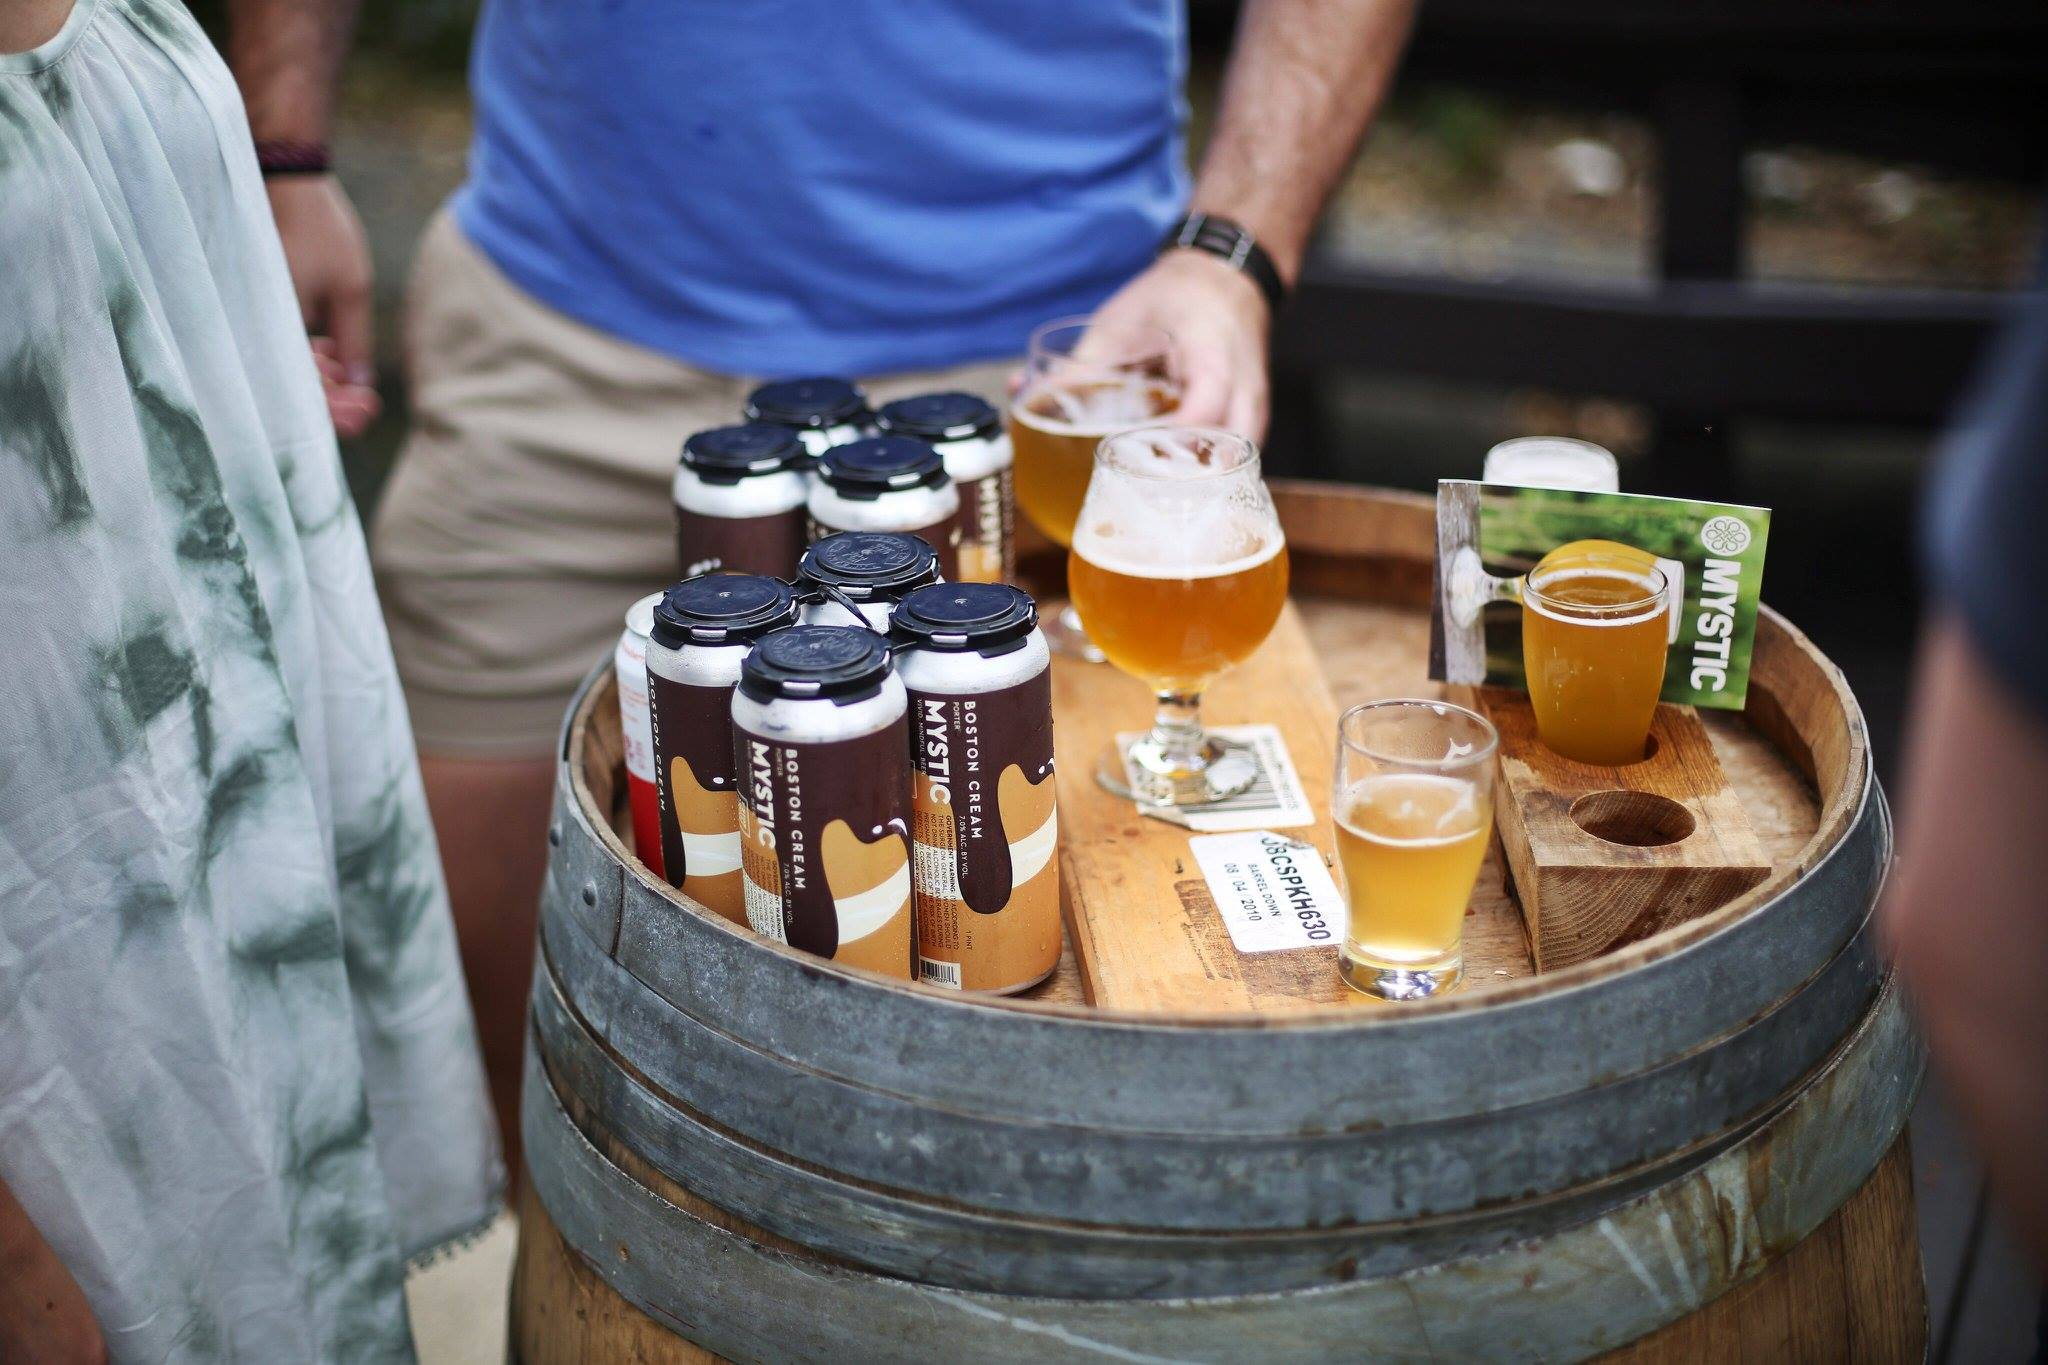 A glass of beer and beer cans stand on top of a barrel; people are standing around the barrel, although only some legs and arms are visible.